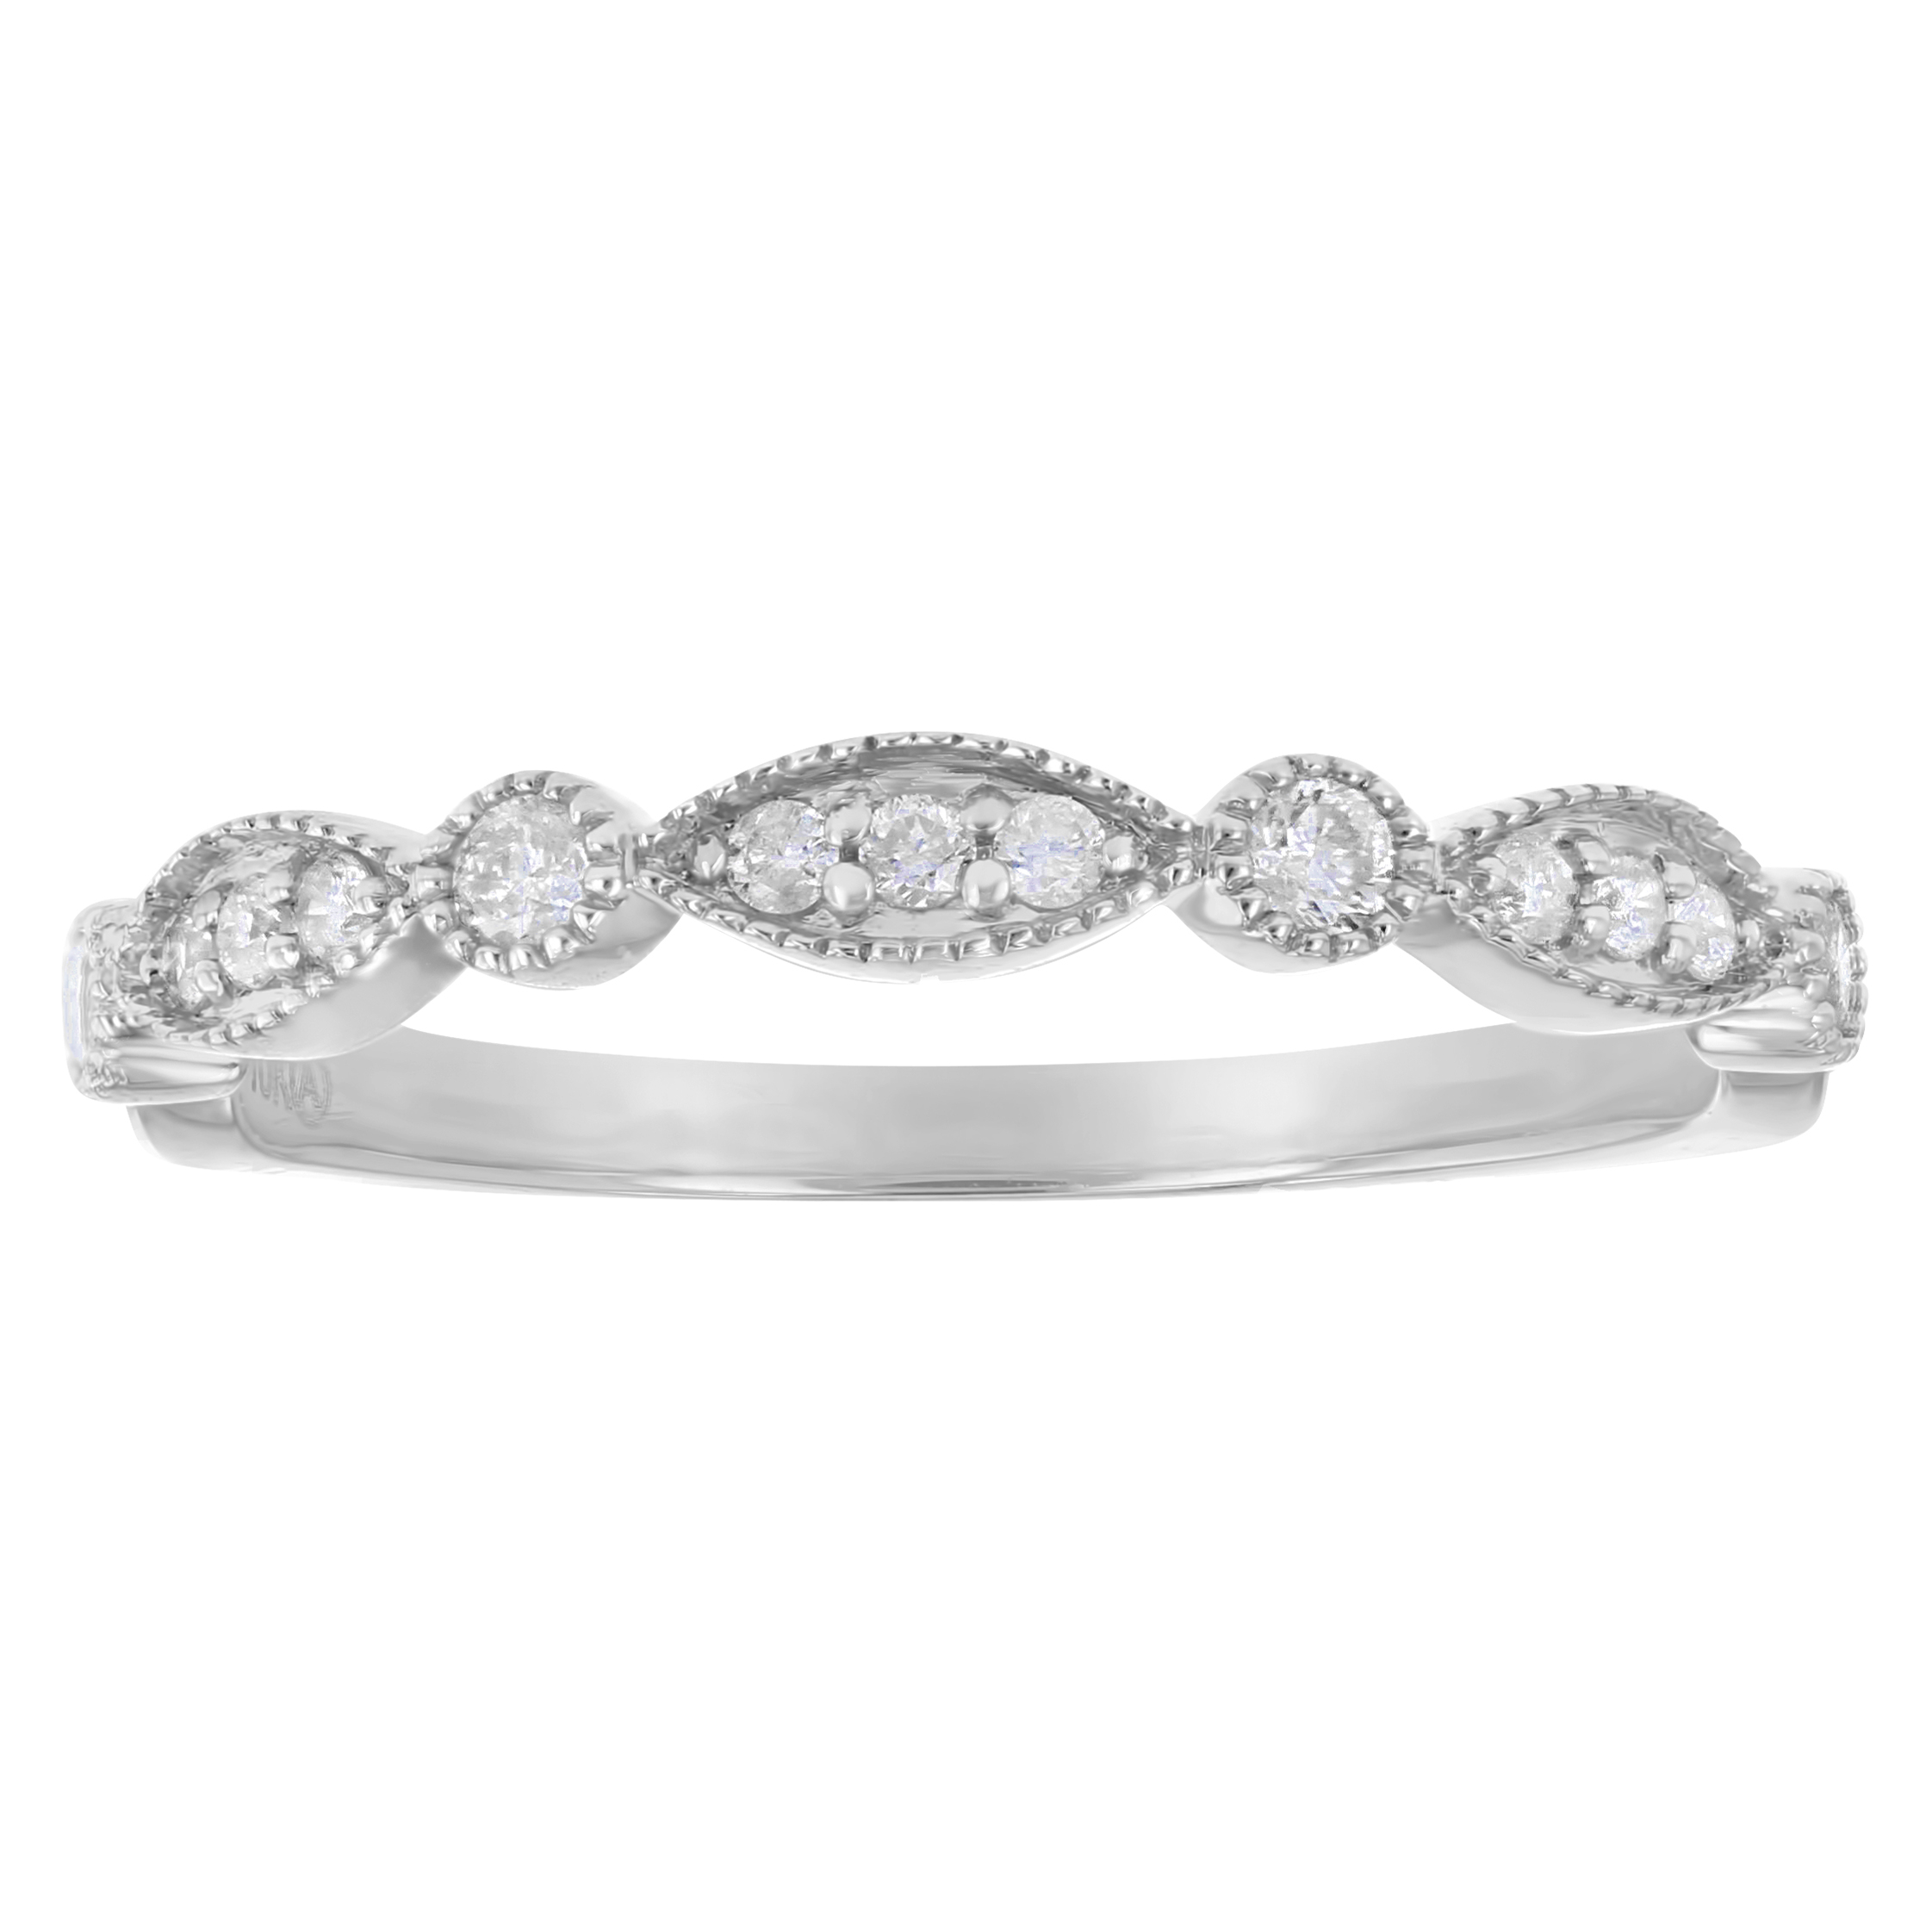 10kt White Gold 1/5ct Diamonds Vintage Inspired Art Deco Anniversary Wedding Band Ring Regarding Most Up To Date Diamond Art Deco Inspired Anniversary Bands In White Gold (View 9 of 25)